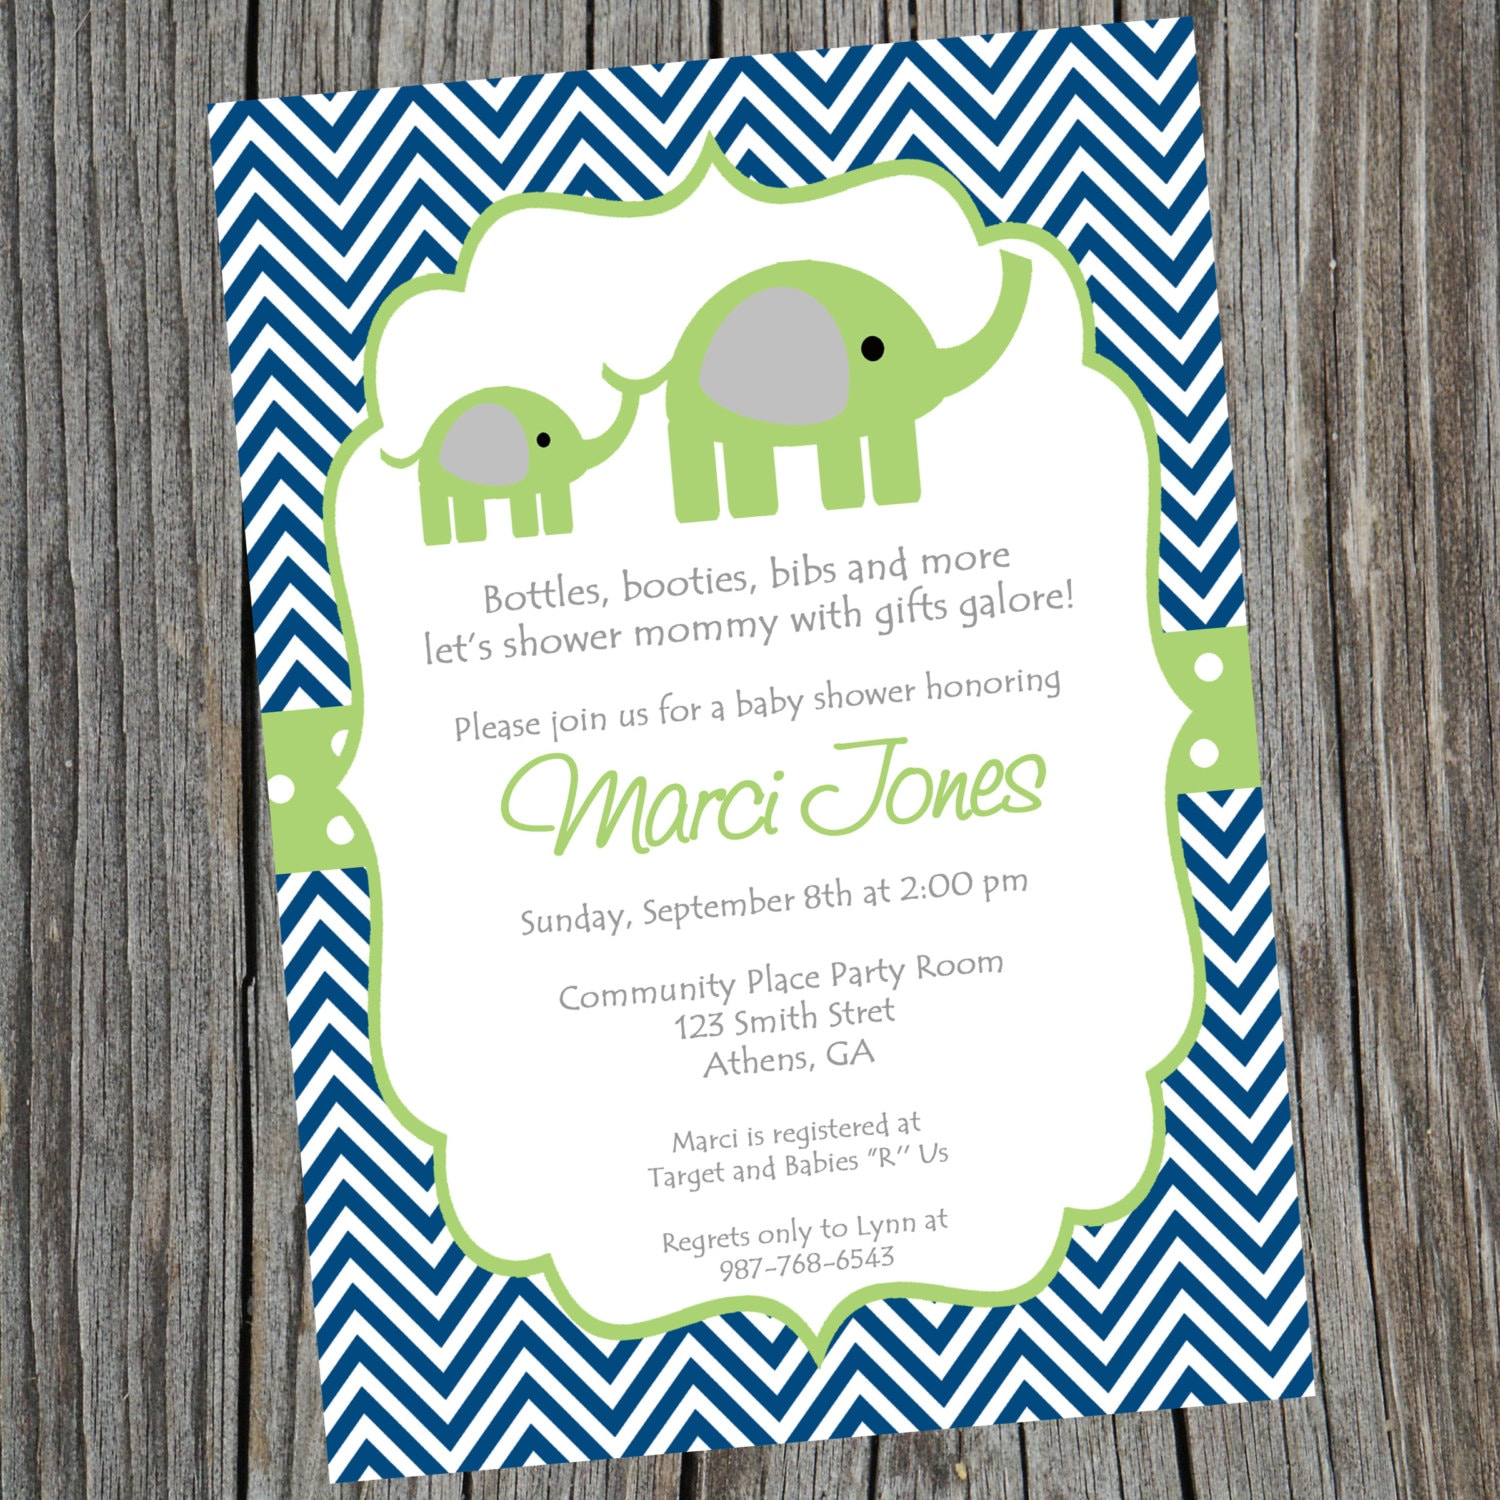 per little baby elephant collections pink ohcreativeone il shower from invitations and fullxfull of brown original peanut set llc girl products personalized